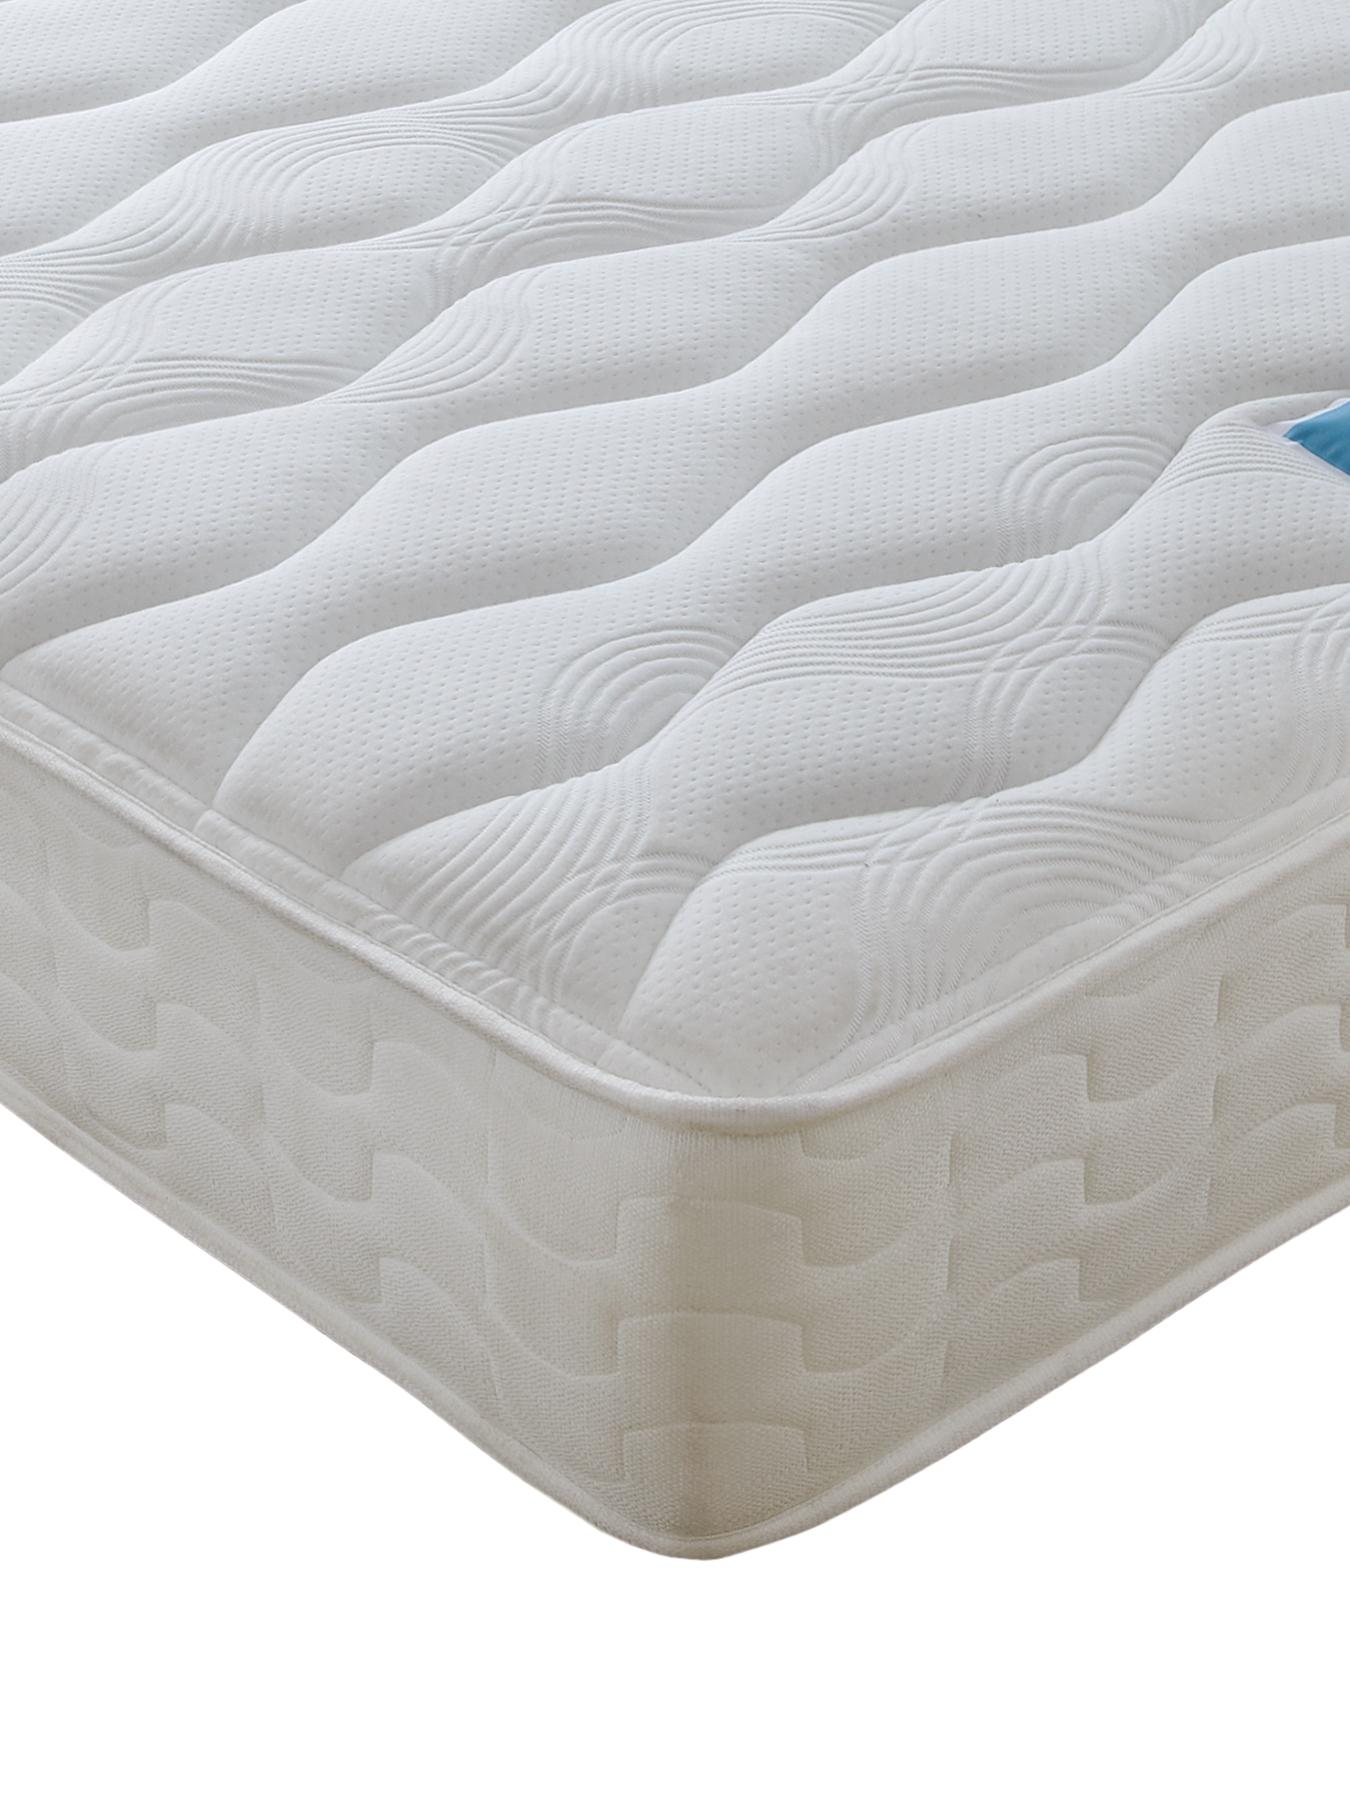 Miracoil 3 EcoMemory Mattress - Medium Firm